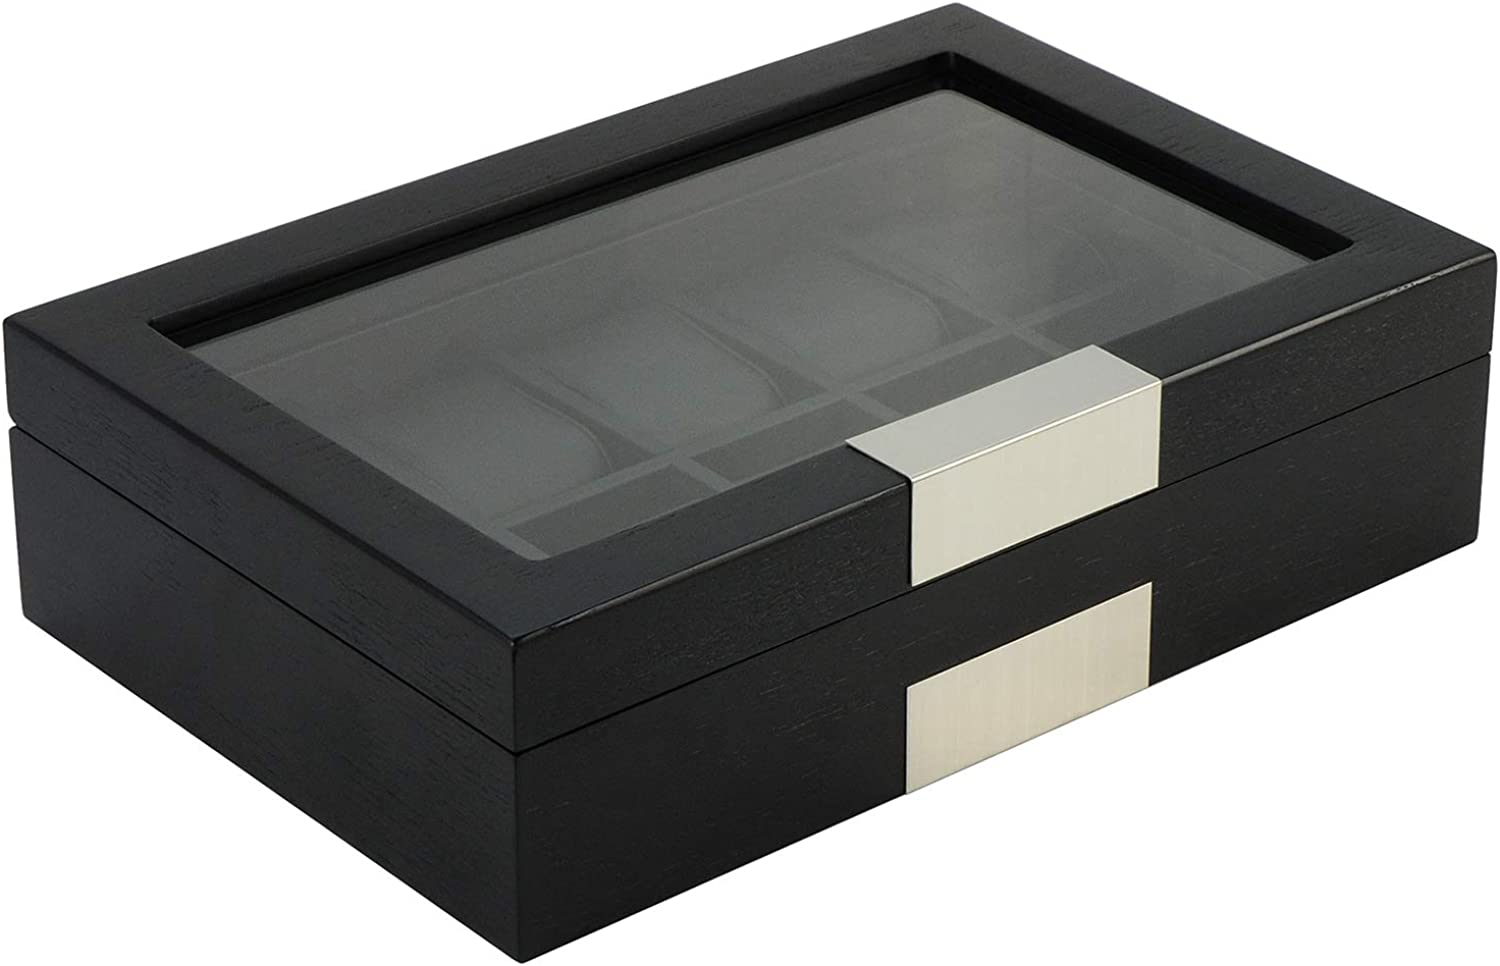 TimelyBuys 10 Ebony Wood Watch Box Display Case Storage Jewelry Organizer with Glass Top, Stainless Steel Accents, and Oversized Black Pillows